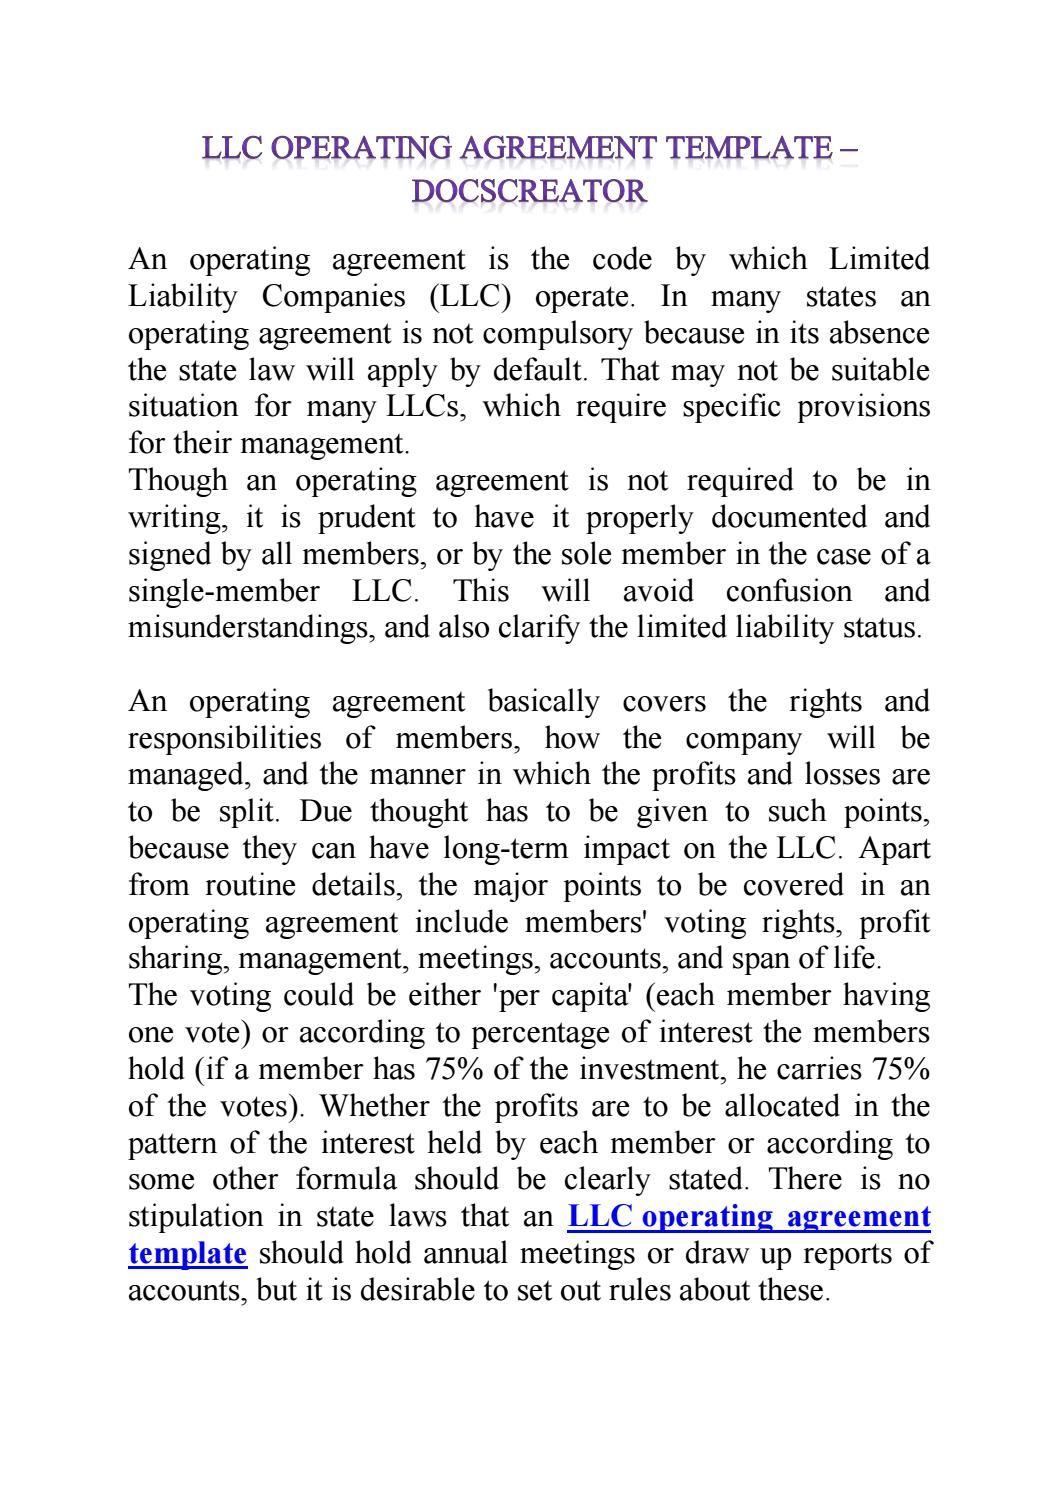 · a document created by the owners, or members of an llc · a written record. Docscreator Online Llc Operating Agreement Template By Docs Creator Issuu